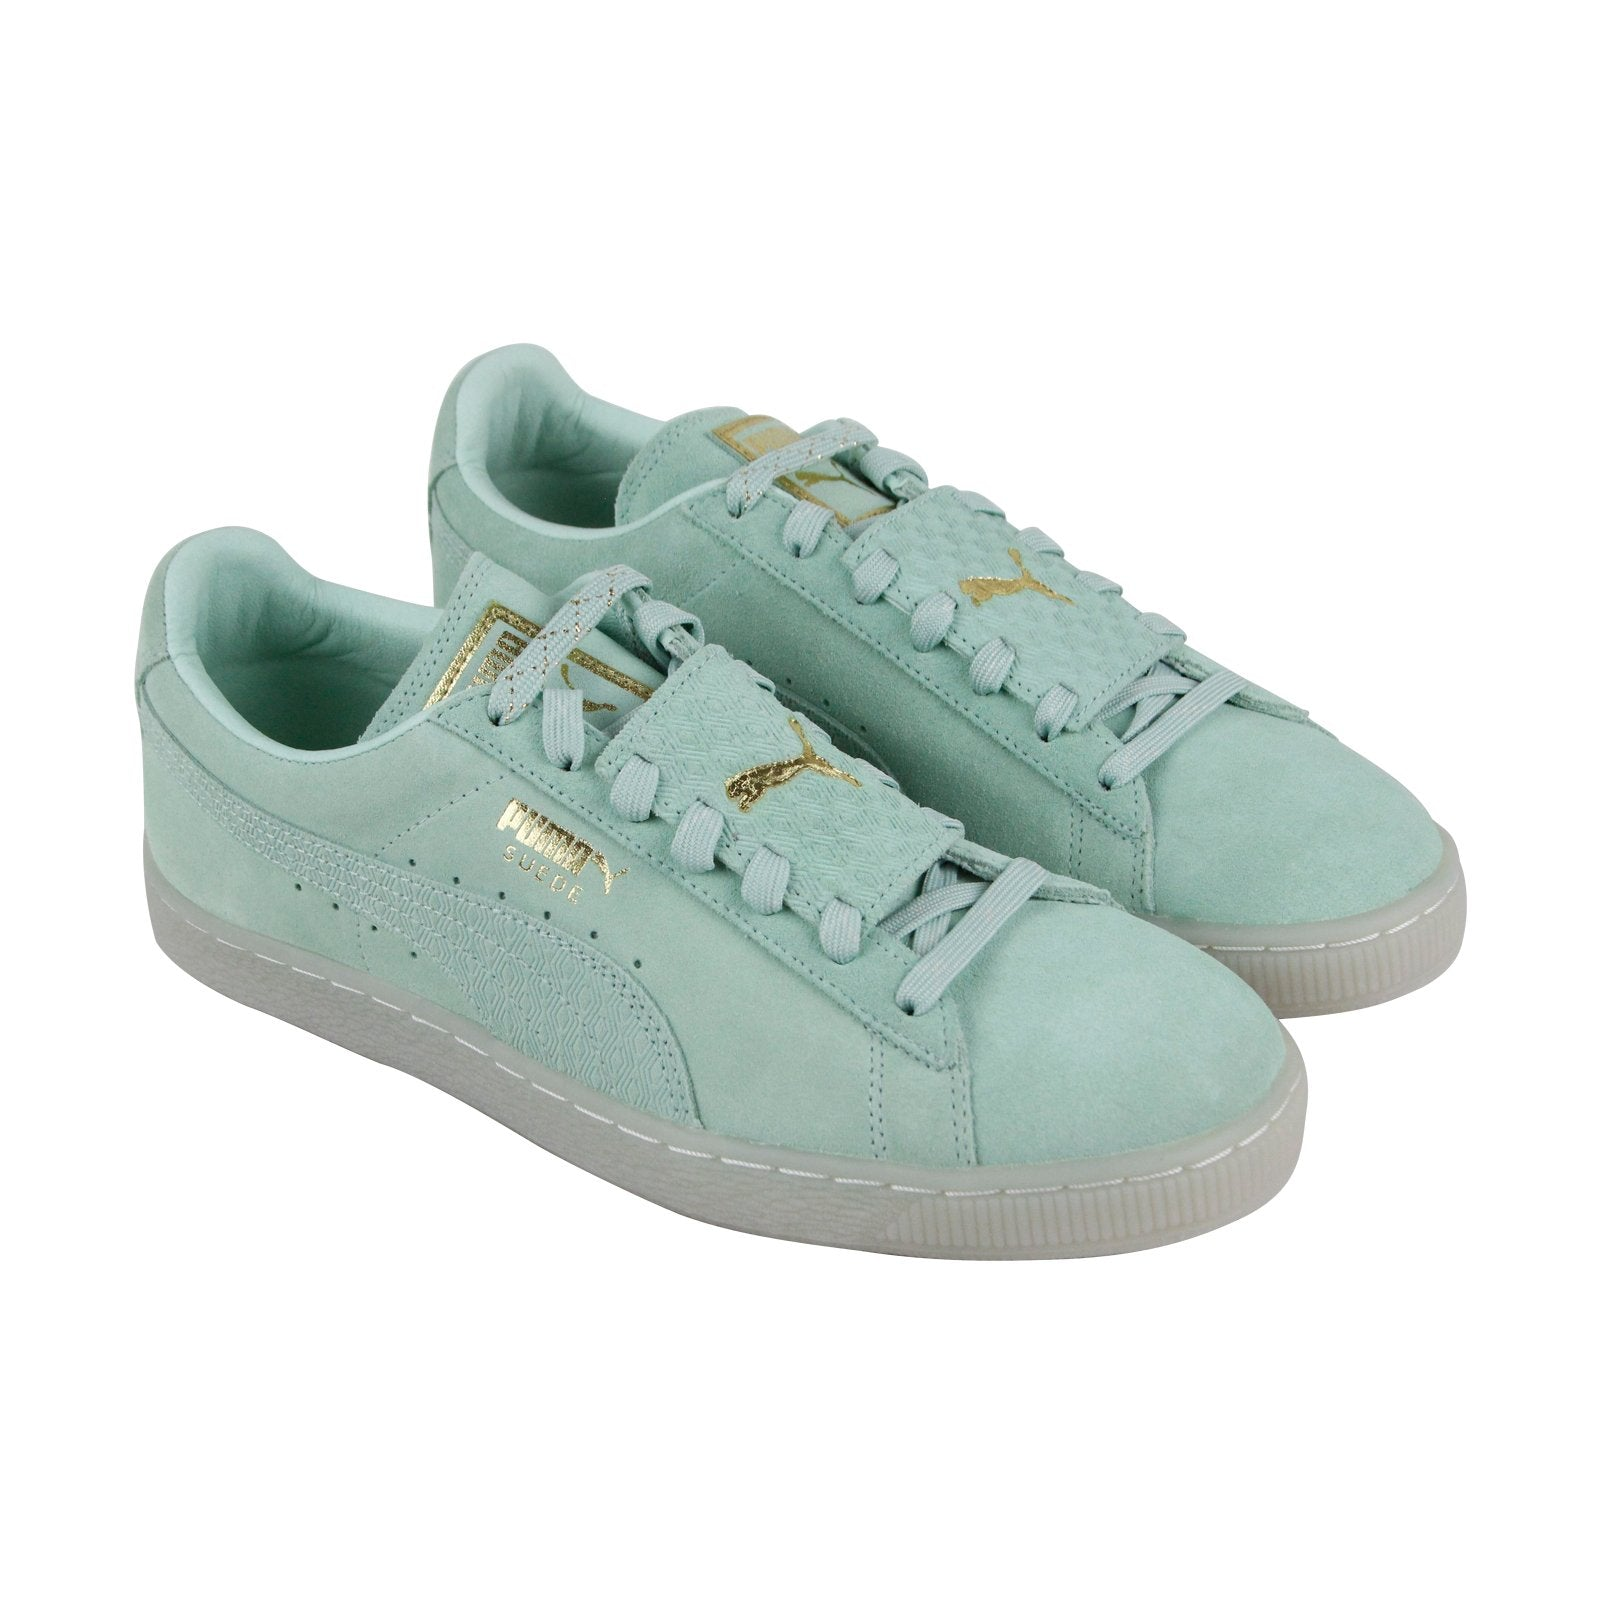 Puma Suede Epic Remix 36549401 Mens Green Casual Lace Up Low Top Sneakers Shoes